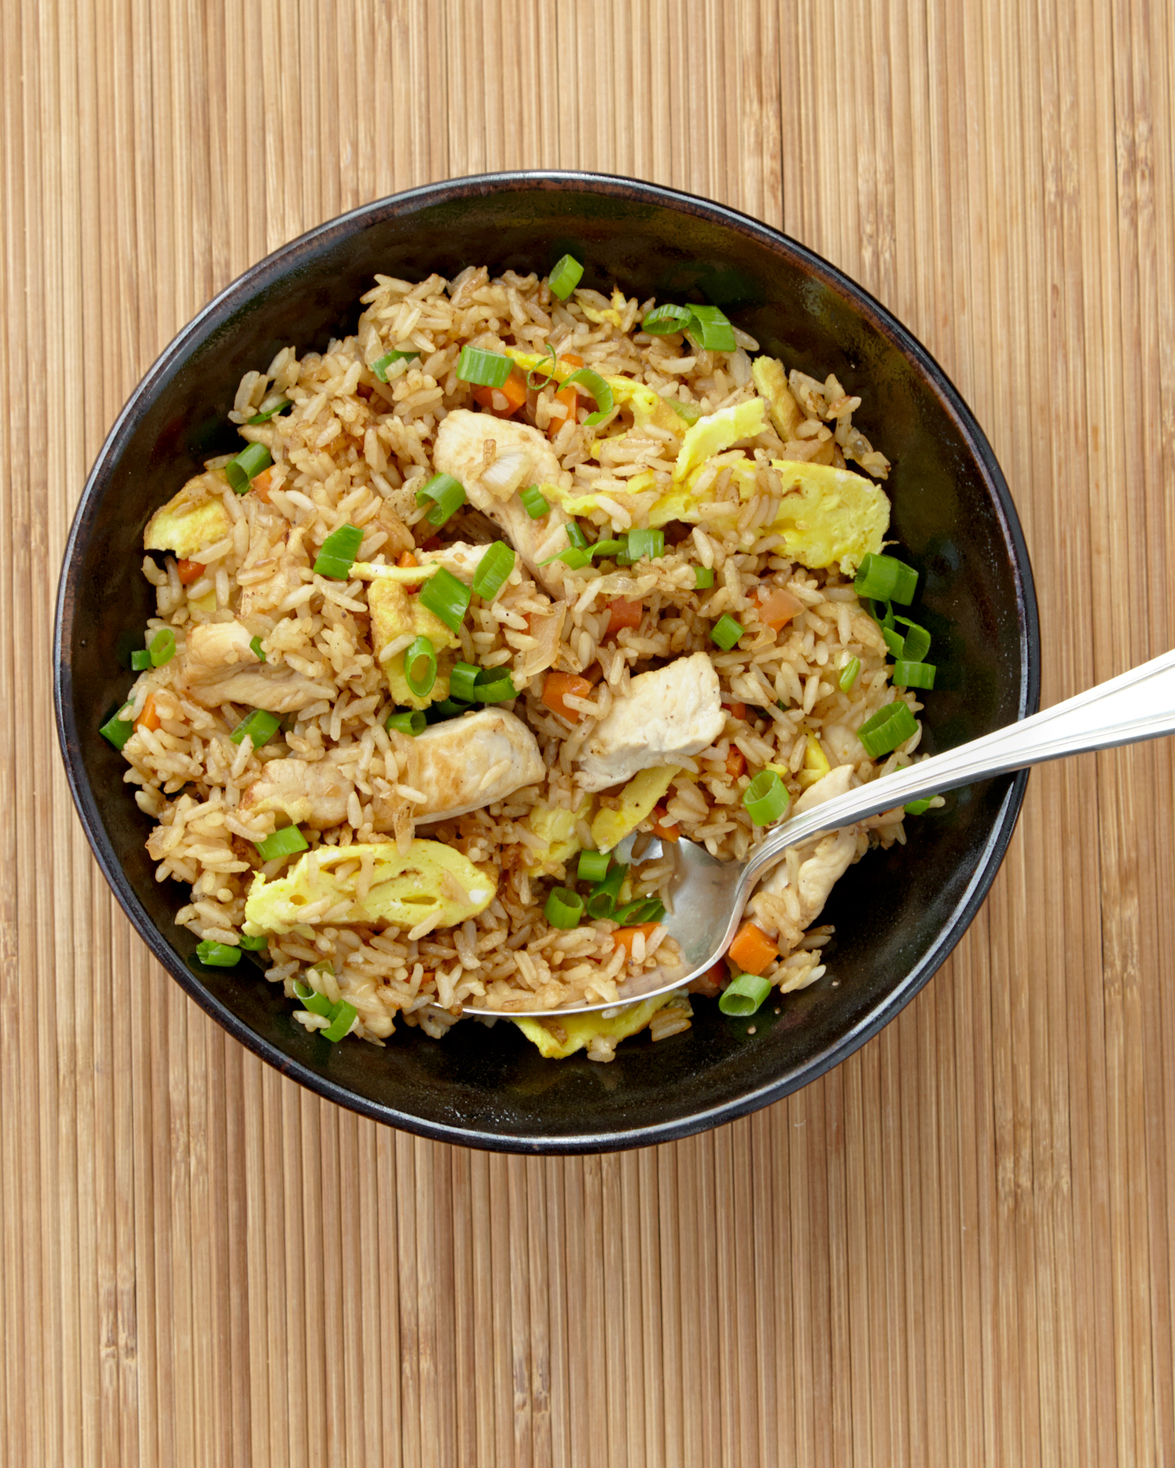 20 Takeout-Inspired Recipes (That Taste So Much Better)